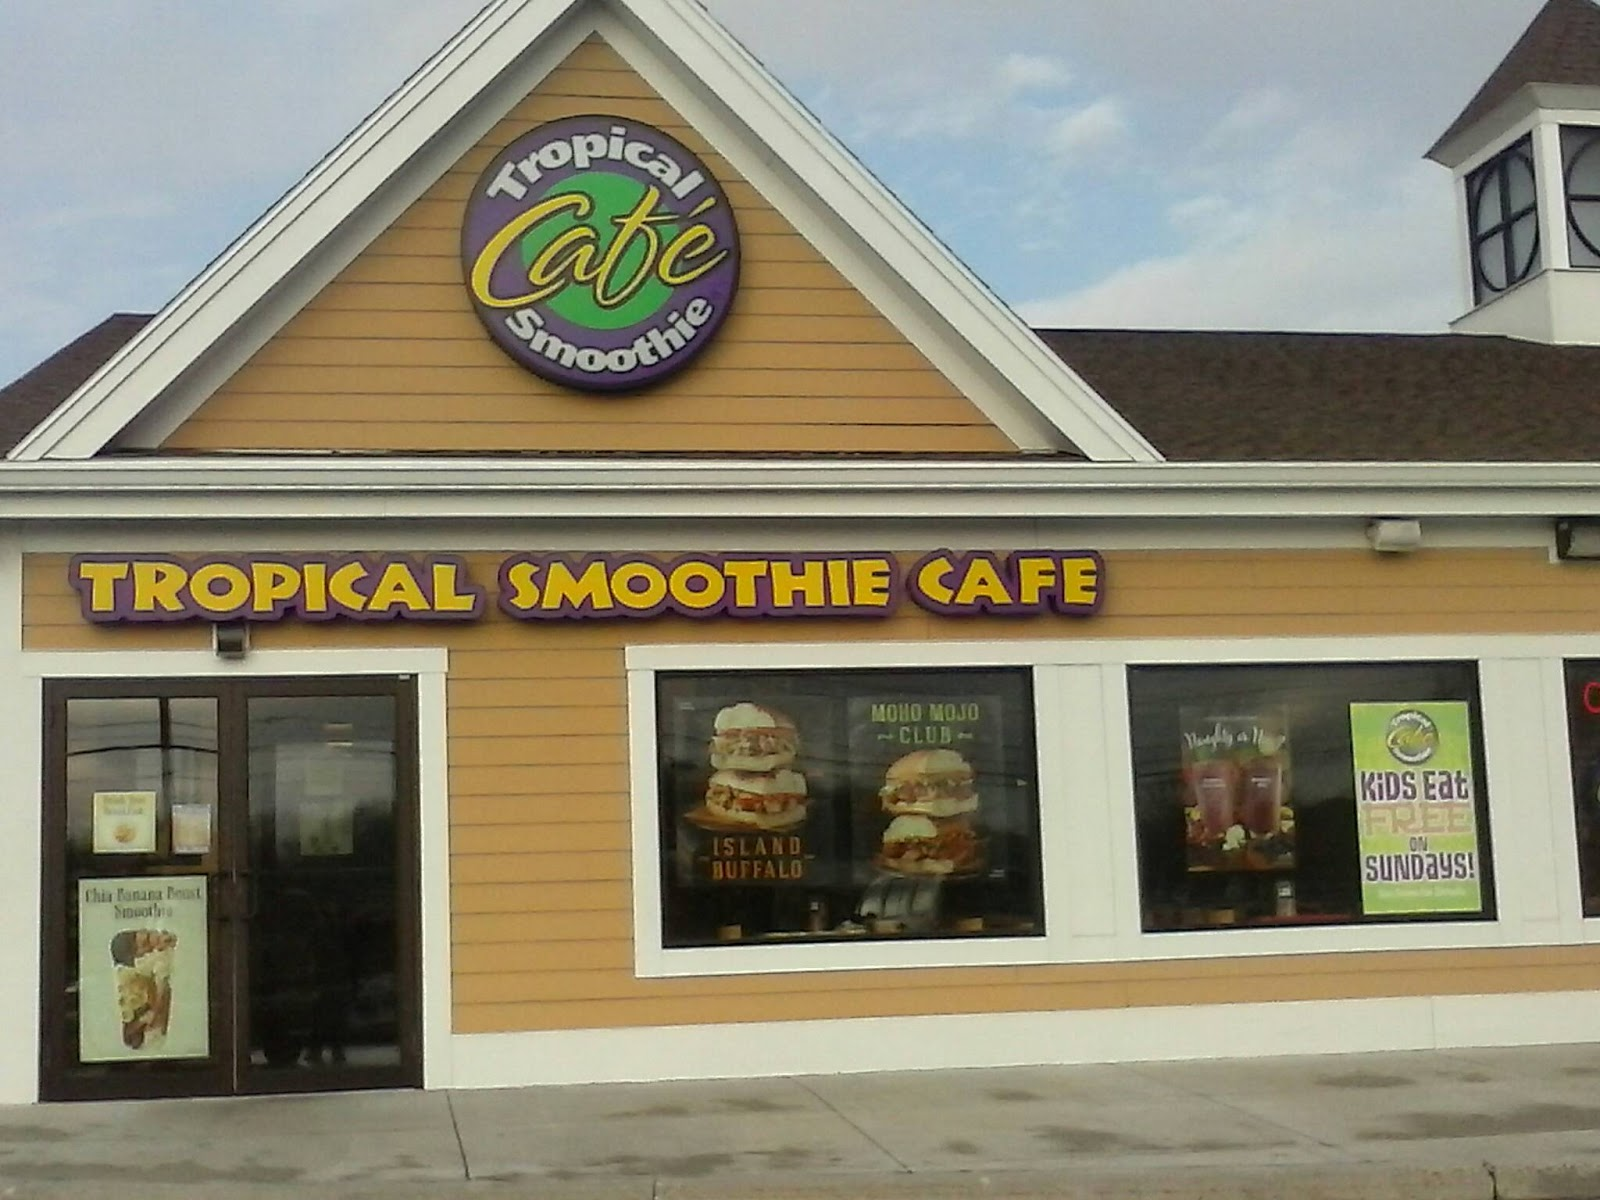 my opinion with it being cold outside having a warm hearty sandwich is awesome i enjoyed the flavors on the moho mojo chicken club and the island buffalo - Tropical Cafe 2015